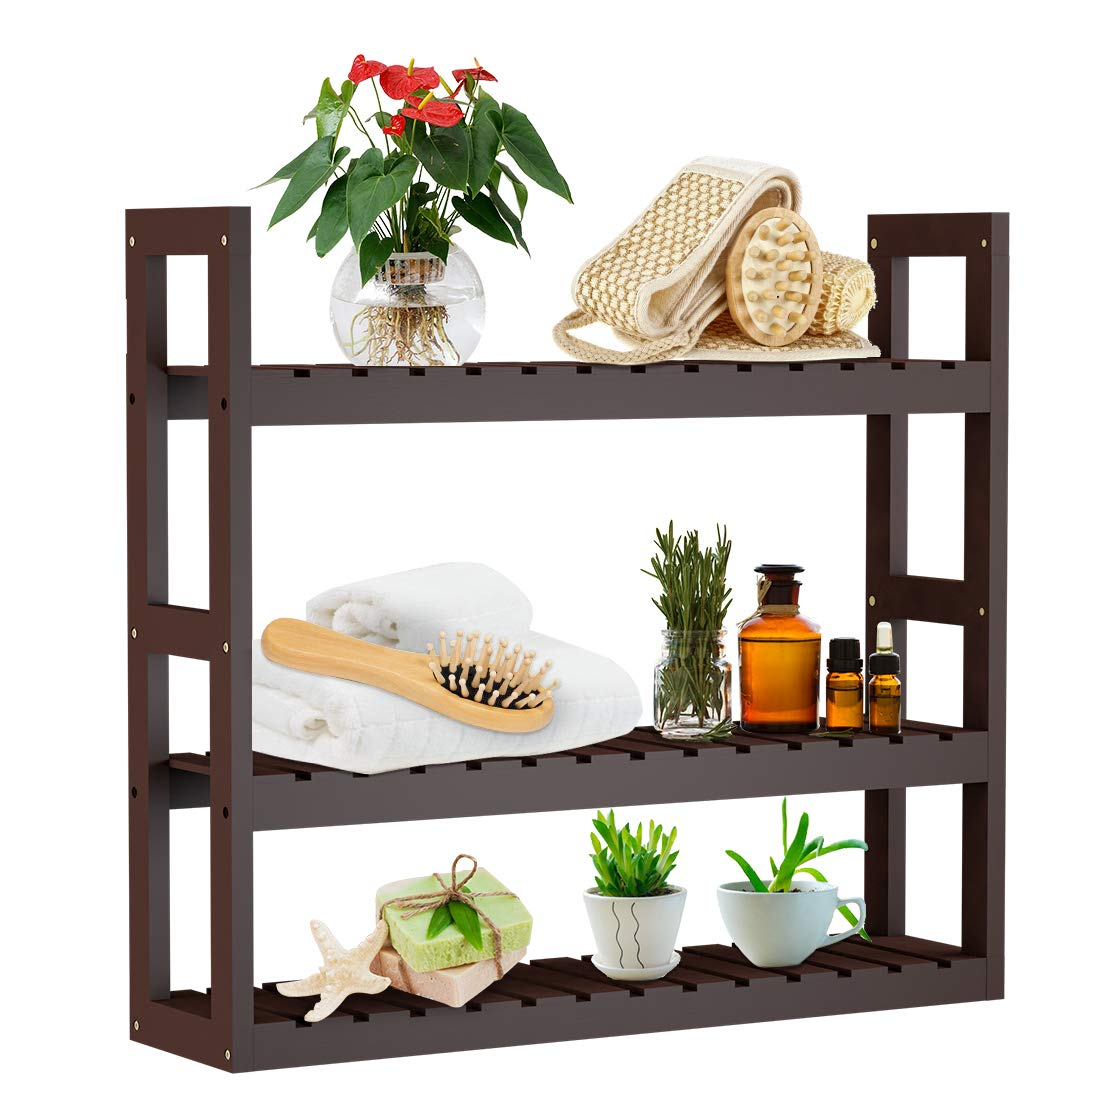 Bathroom Shelf 3-Tier Wall Mount Shelf Storage Rack Adjustable Layer Free Standing Plant Stand Towel Holder Over Toilet Shelves Living Room Kitchen Brown by Domax